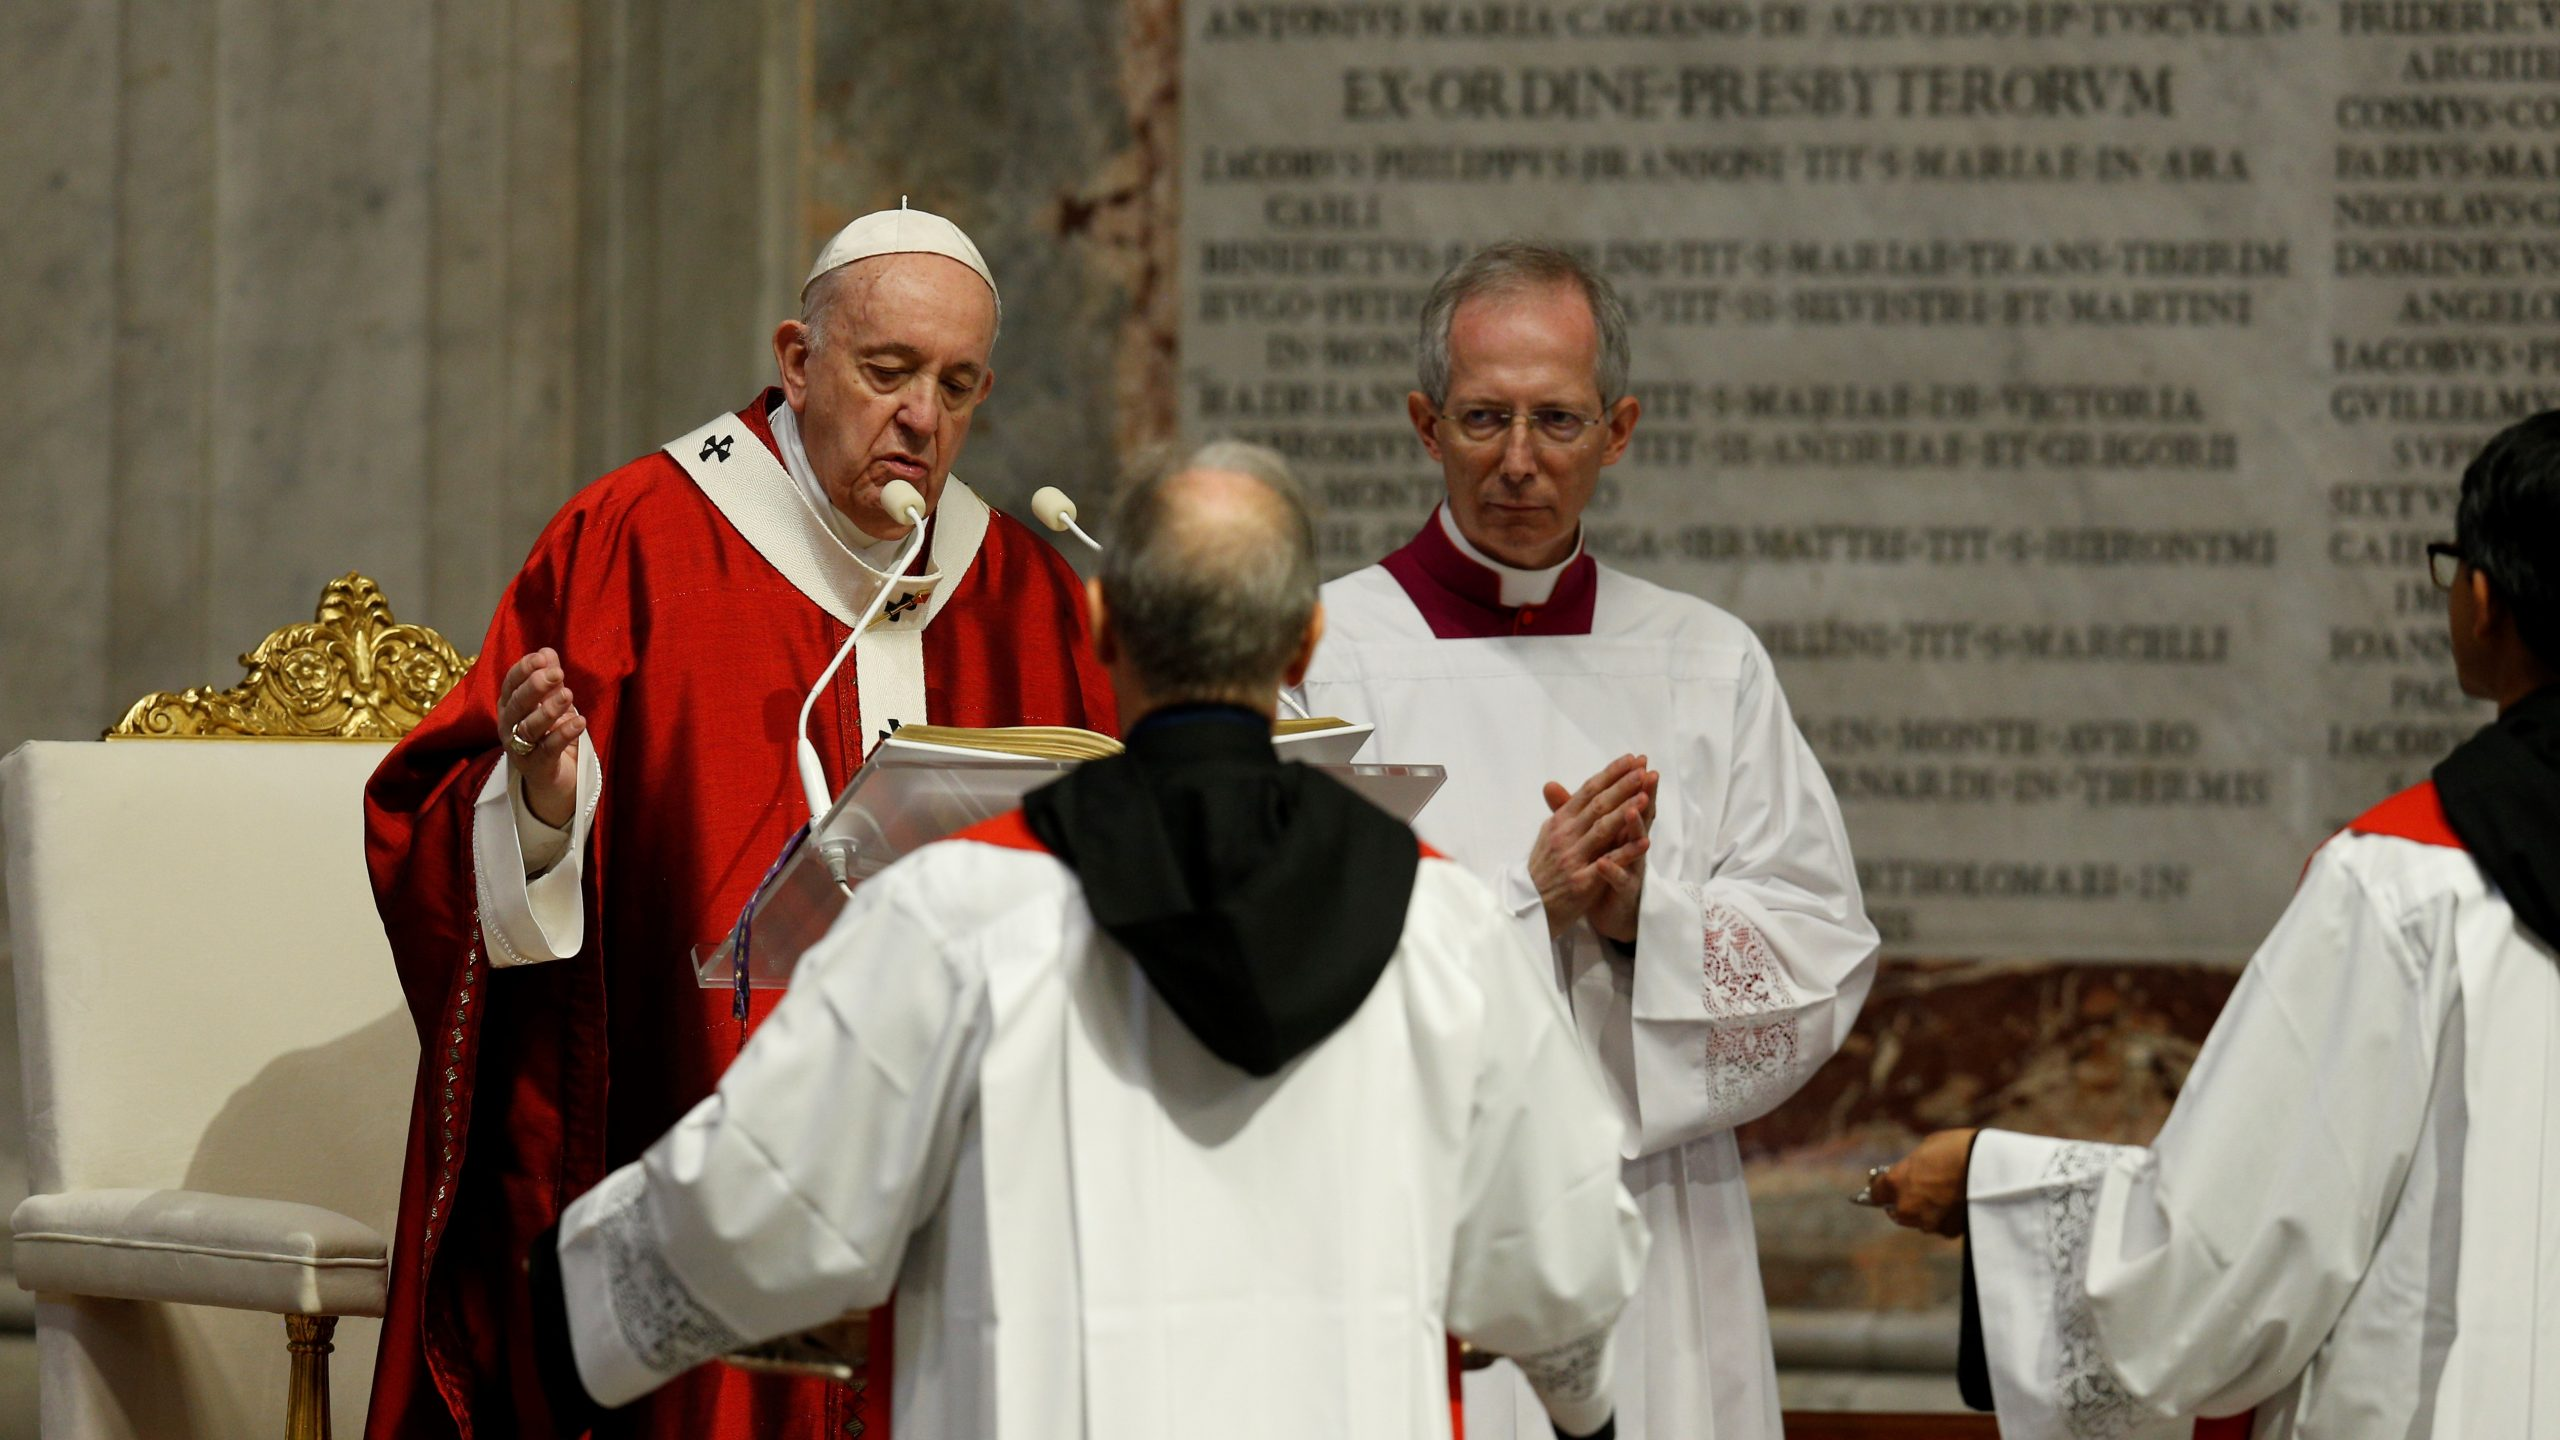 Pope Francis' homily for the Solemnity of Saints Peter and Paul